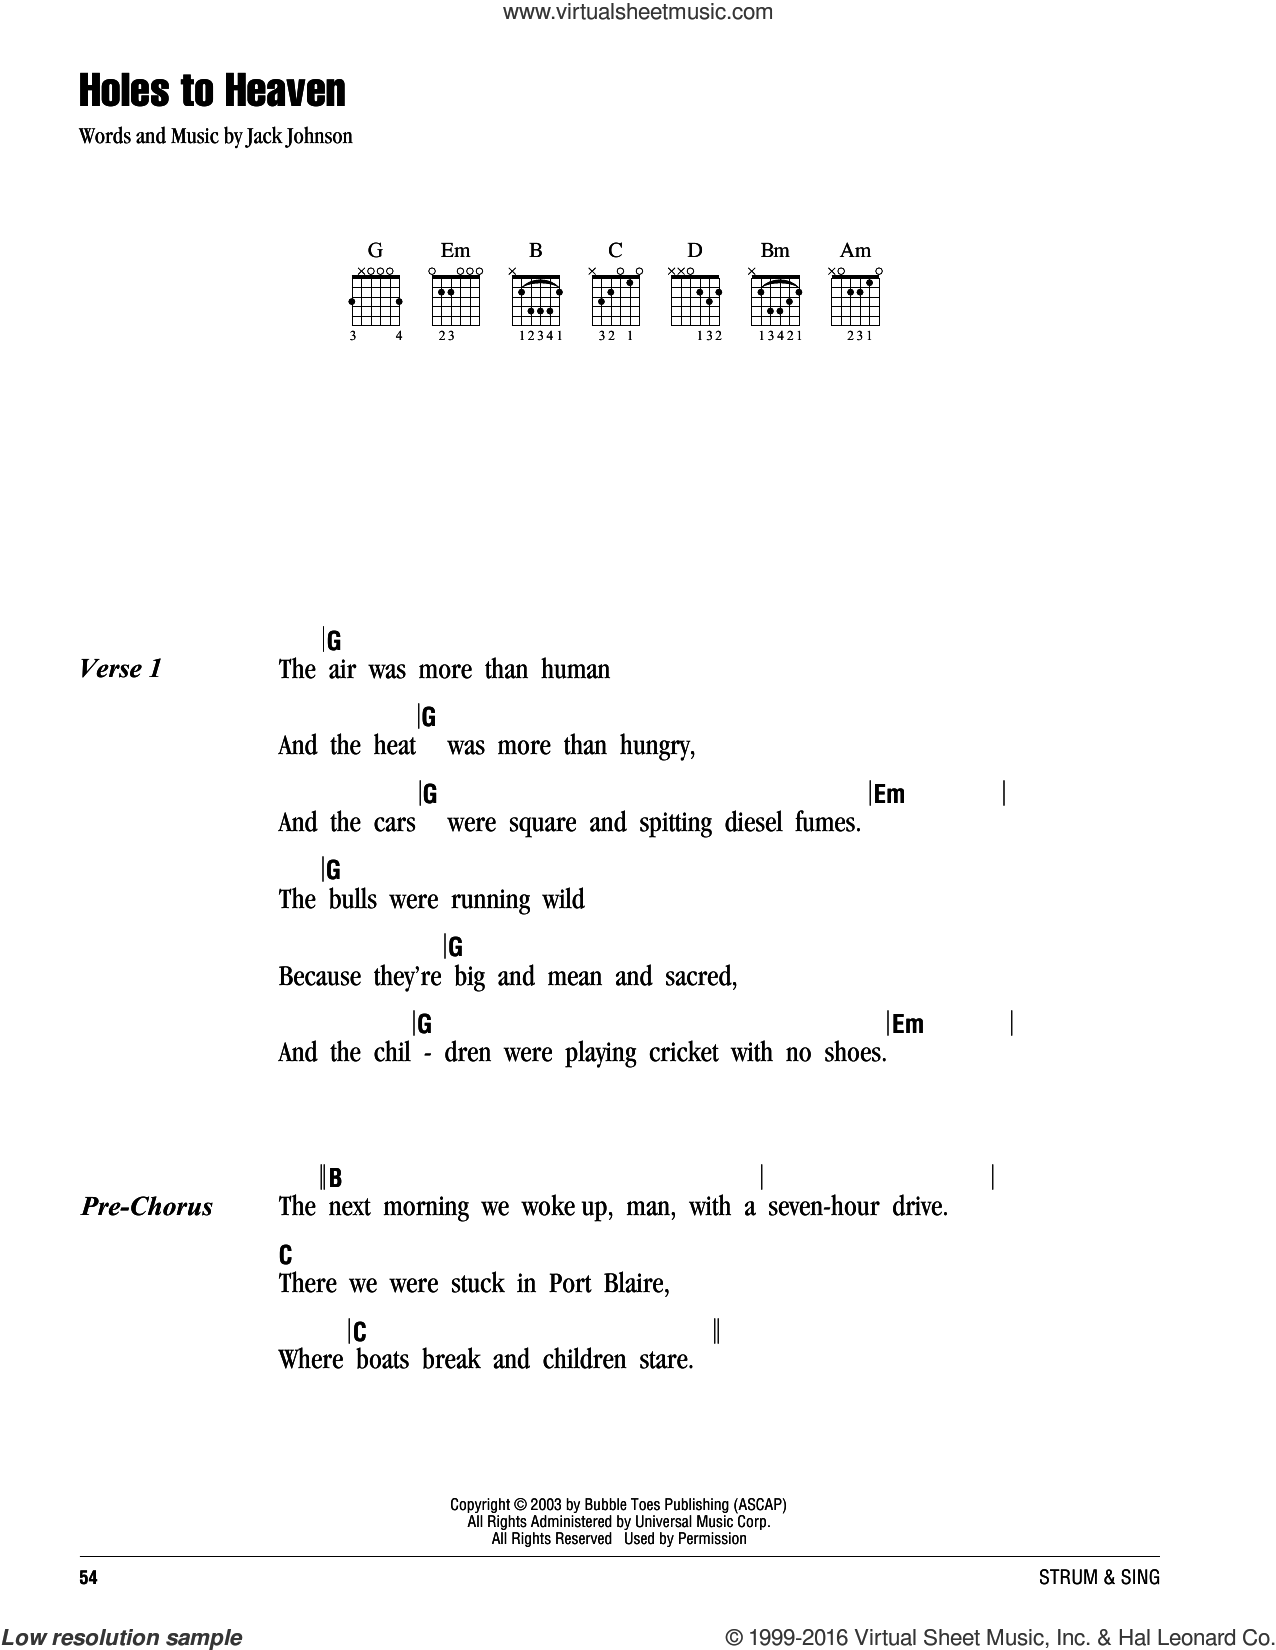 Holes To Heaven sheet music for guitar (chords) by Jack Johnson